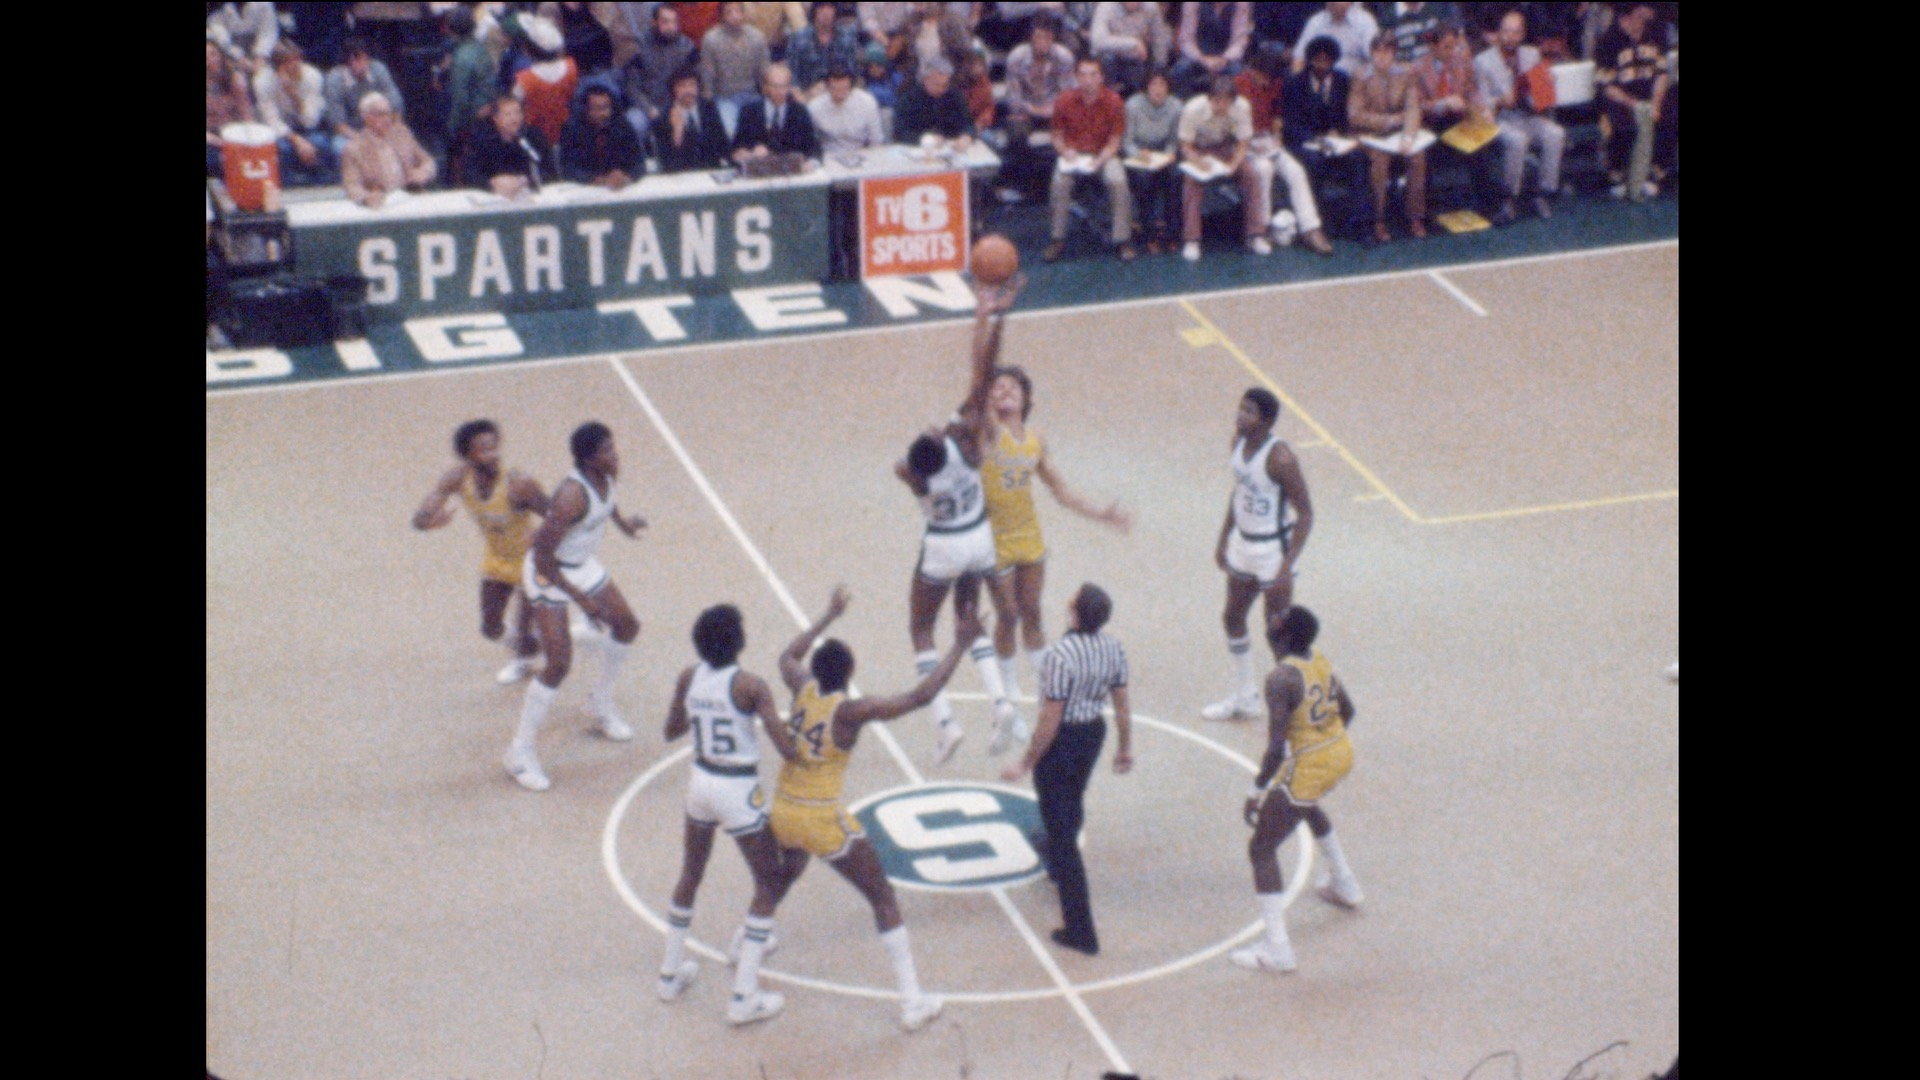 MSU Basketball vs. Central Michigan, 1978